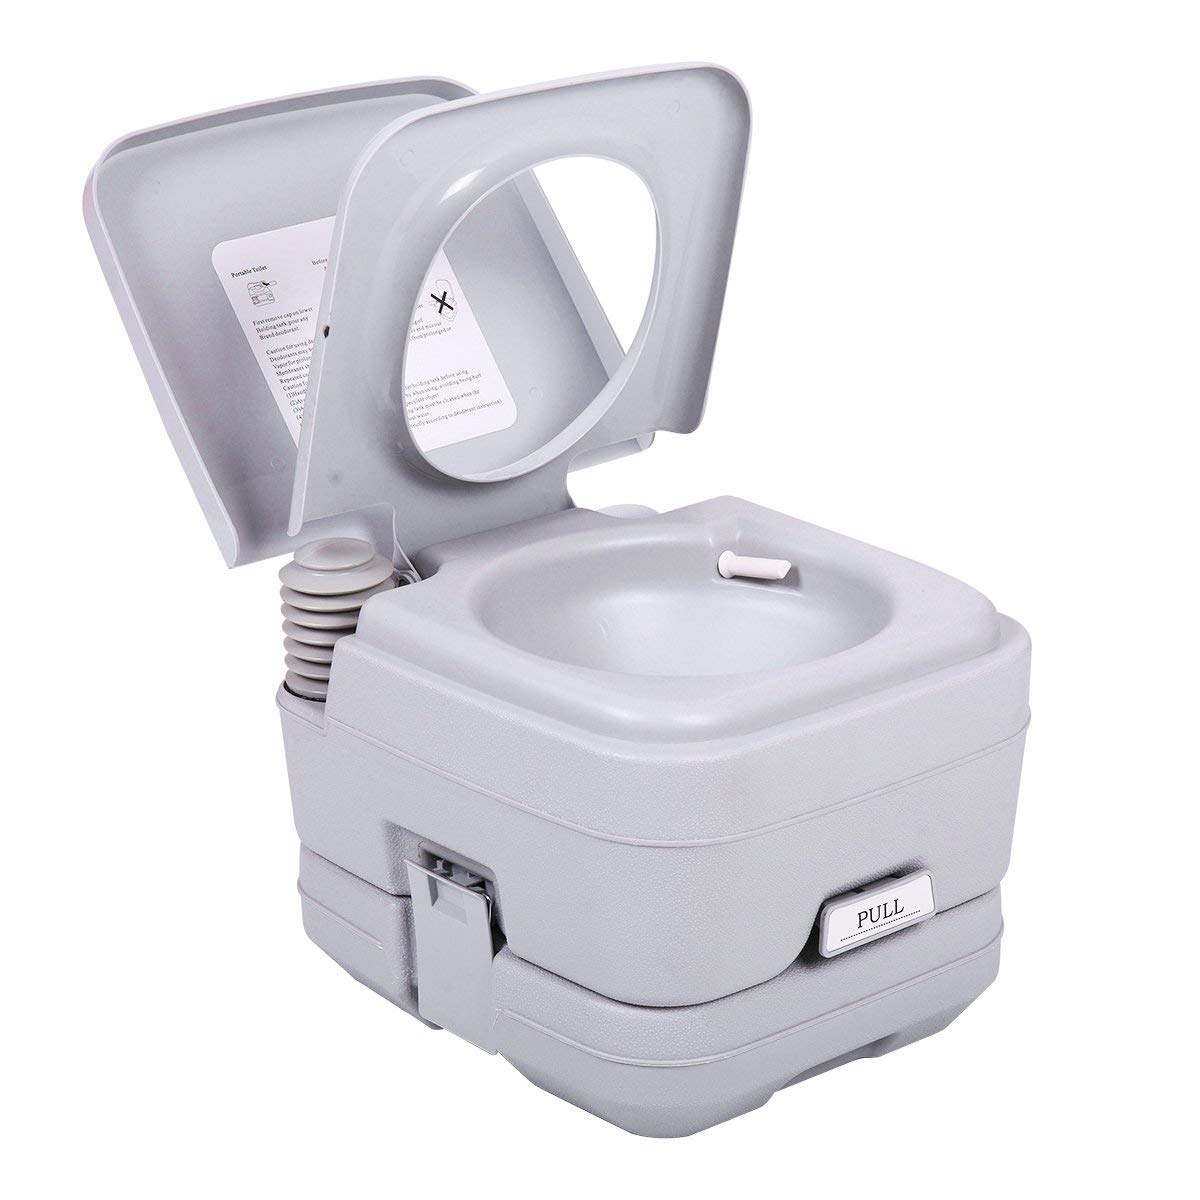 Zimtown 2.8 Gallons Portable Toilet, 10L Leak Proof Flushable Water Porta Potty/Potti with Detachable Tanks, for Travel, Camping, RV, Boating,Hiking & Other Outdoor or Indoor Activites